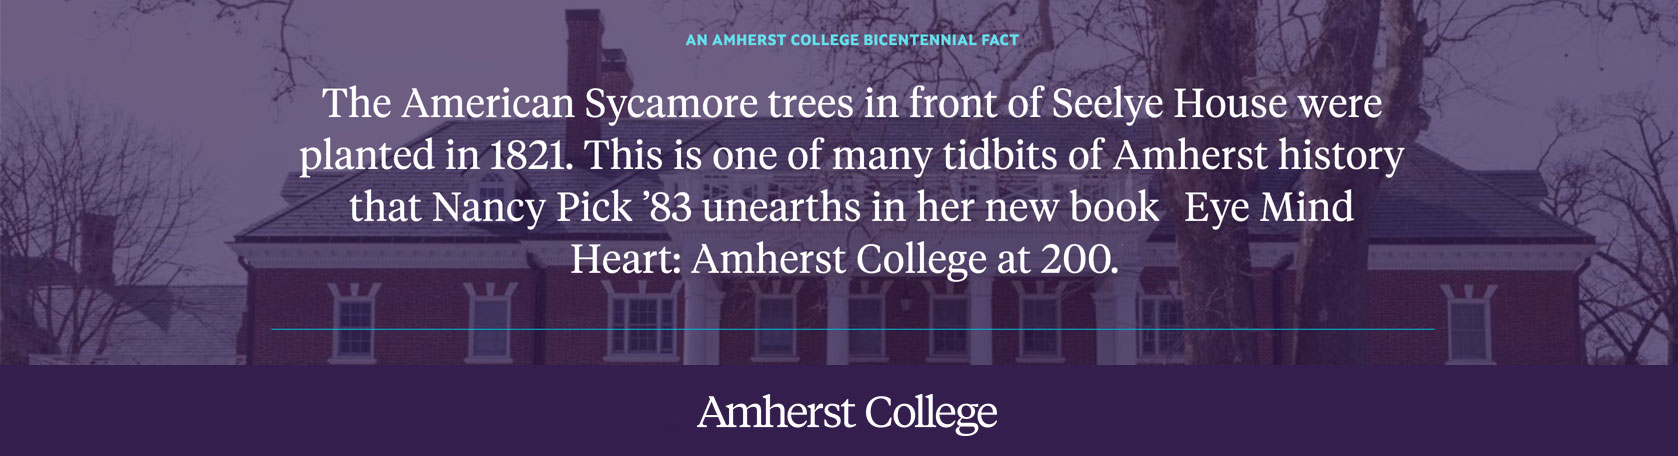 Bicentennial Fact: the Sycamores in front of Seelye House were planted in 1821